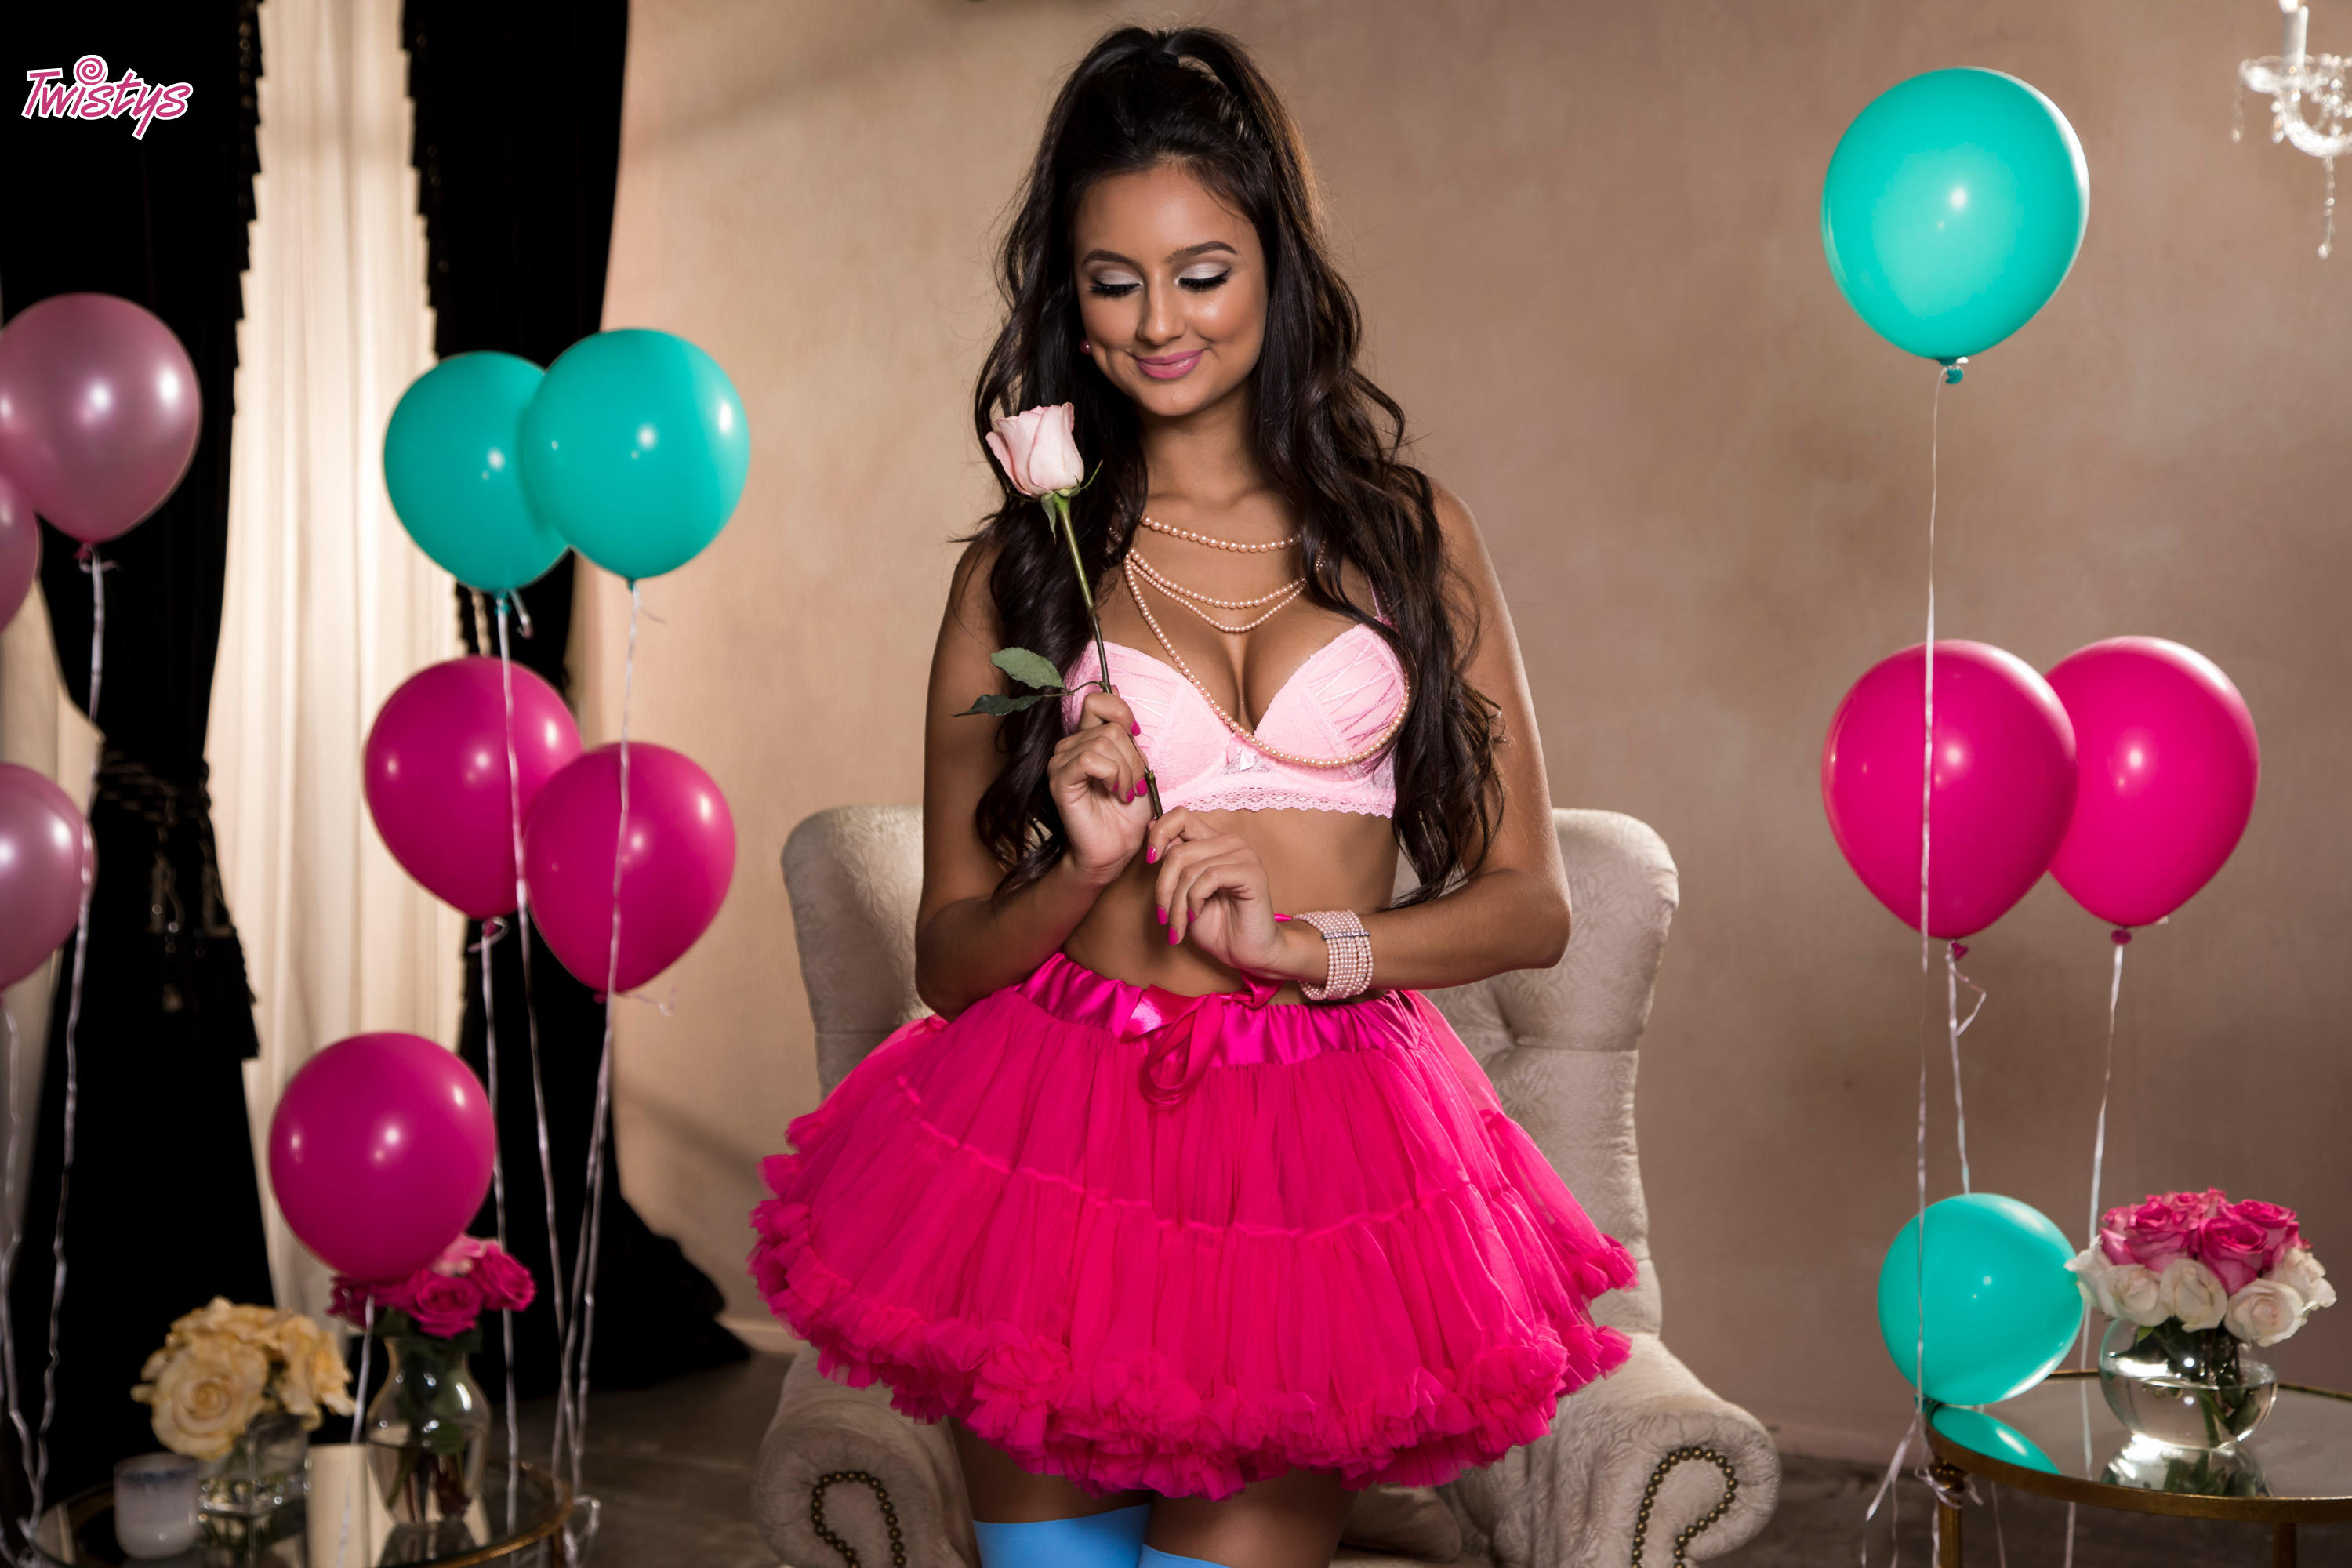 Twistys 'Balloons and Bubble Gum' starring Eliza Ibarra (Photo 10)